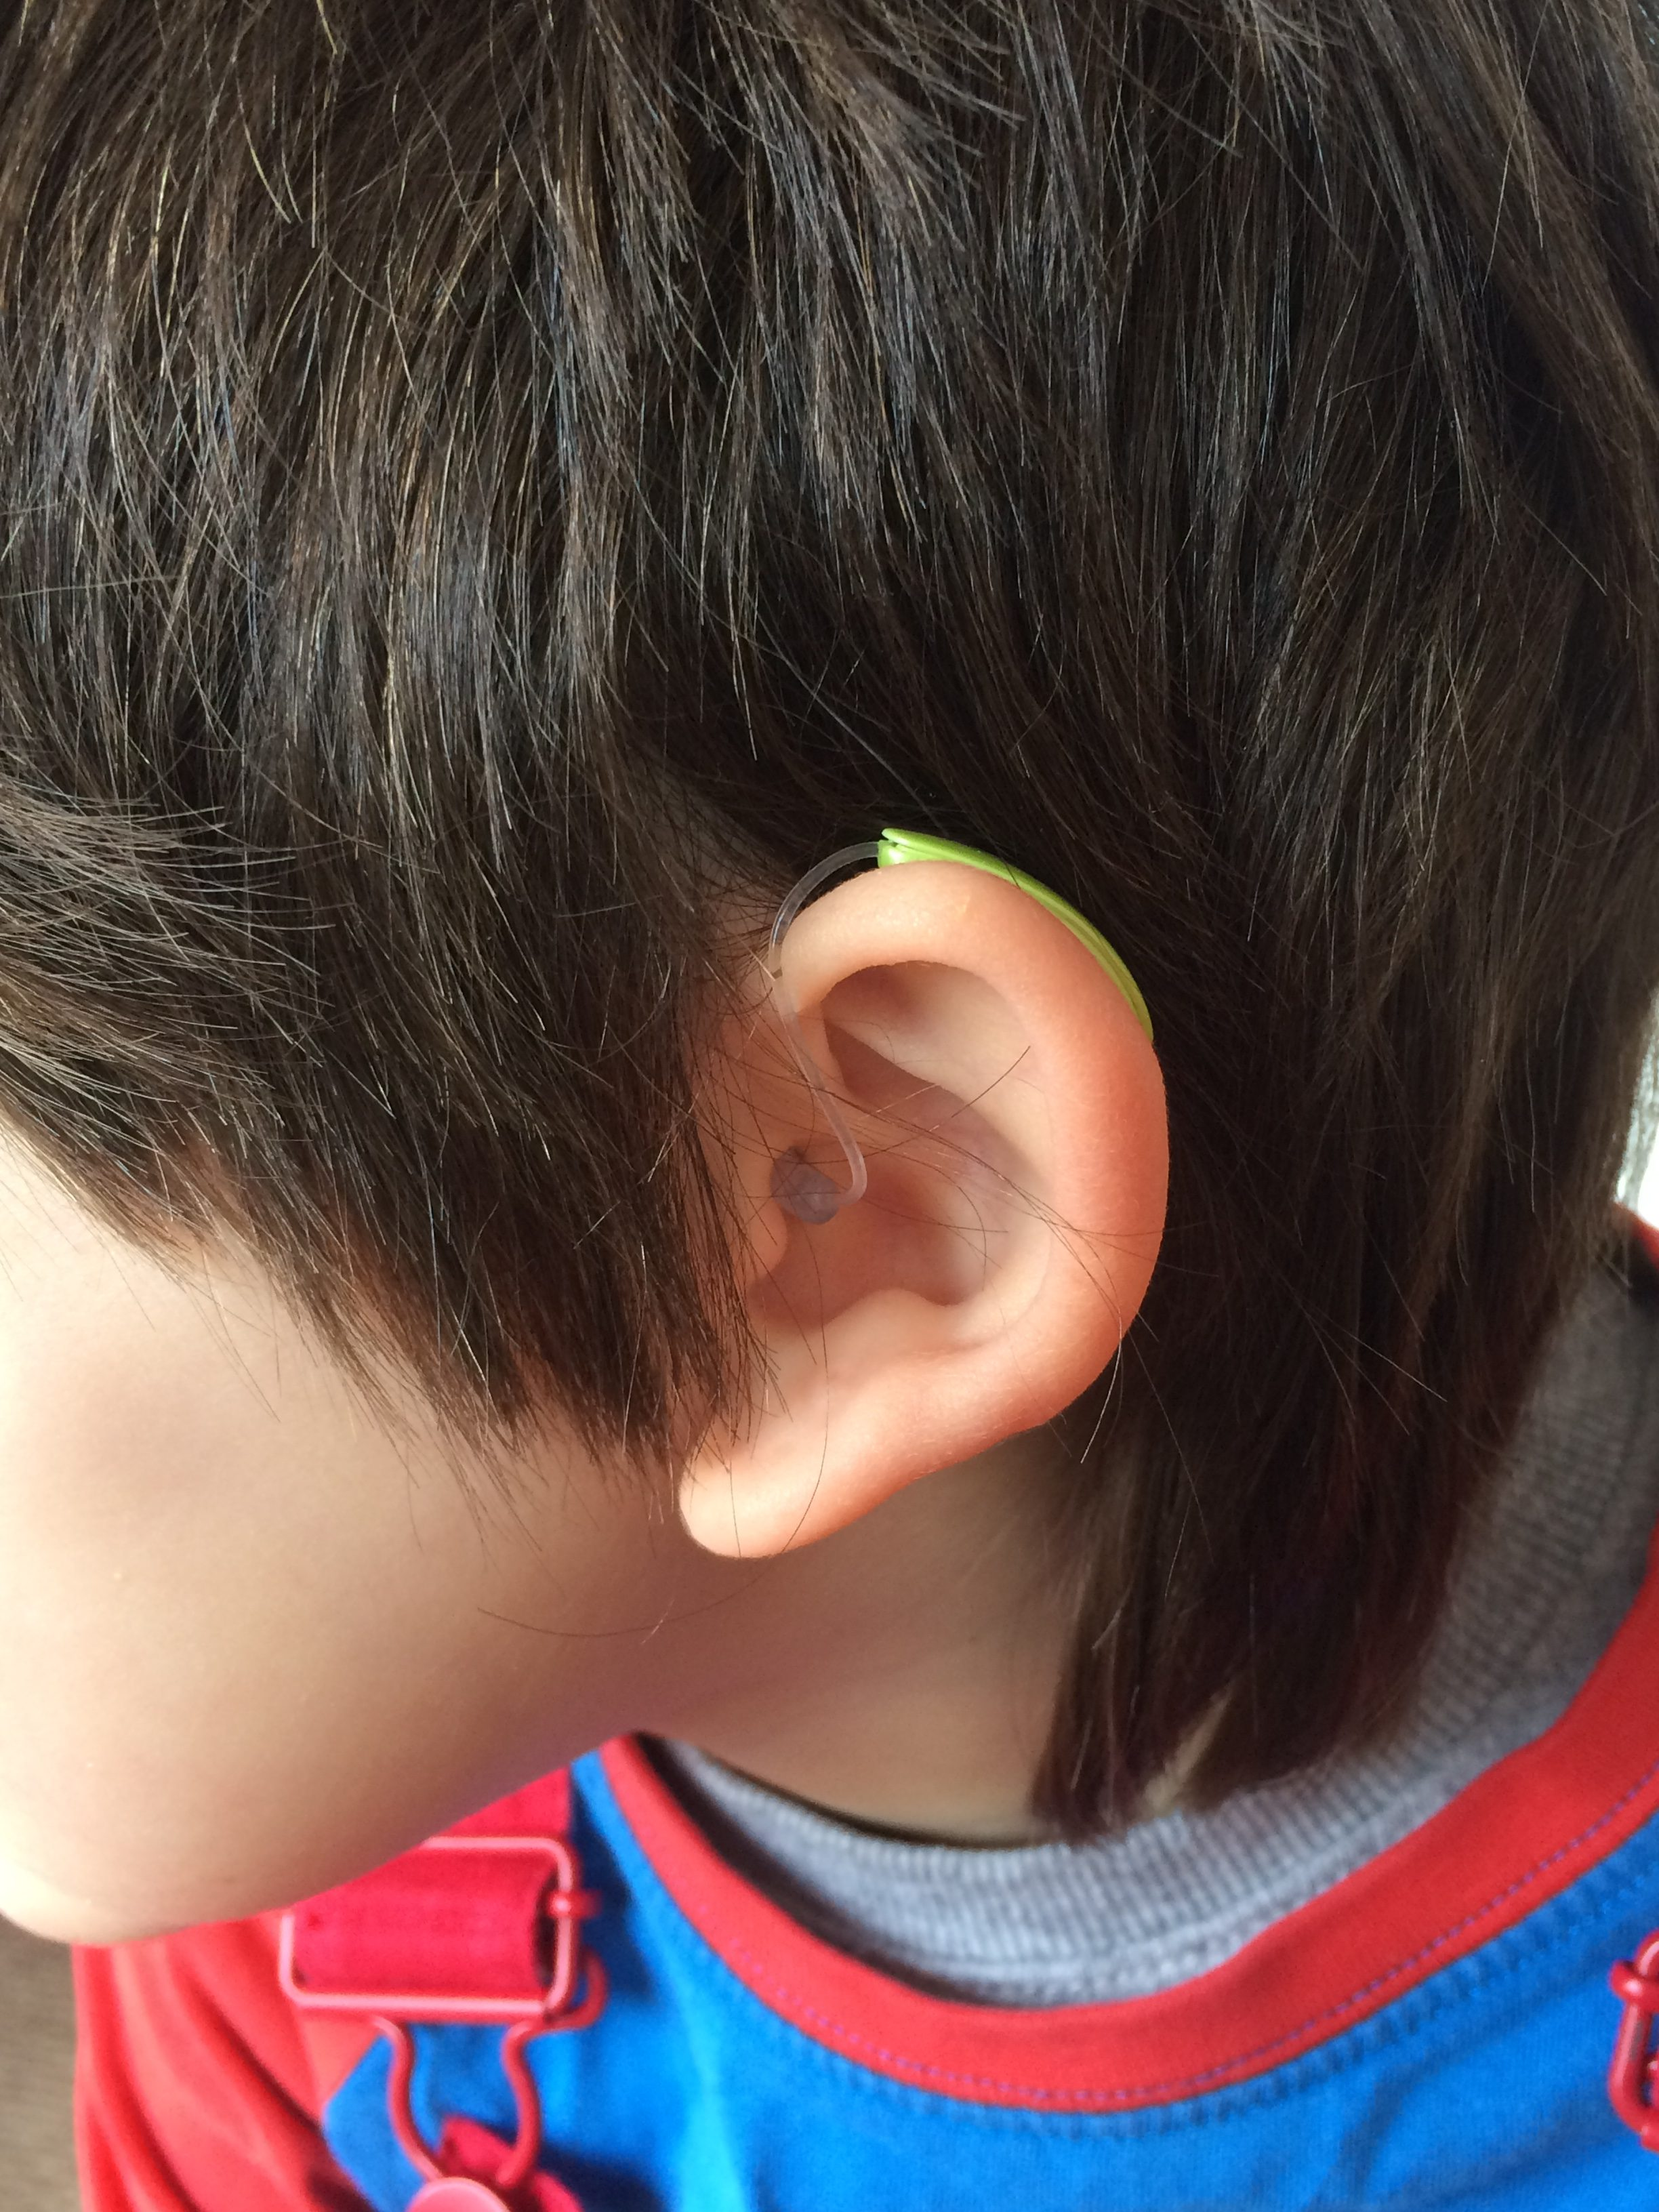 Fitting hearing aids